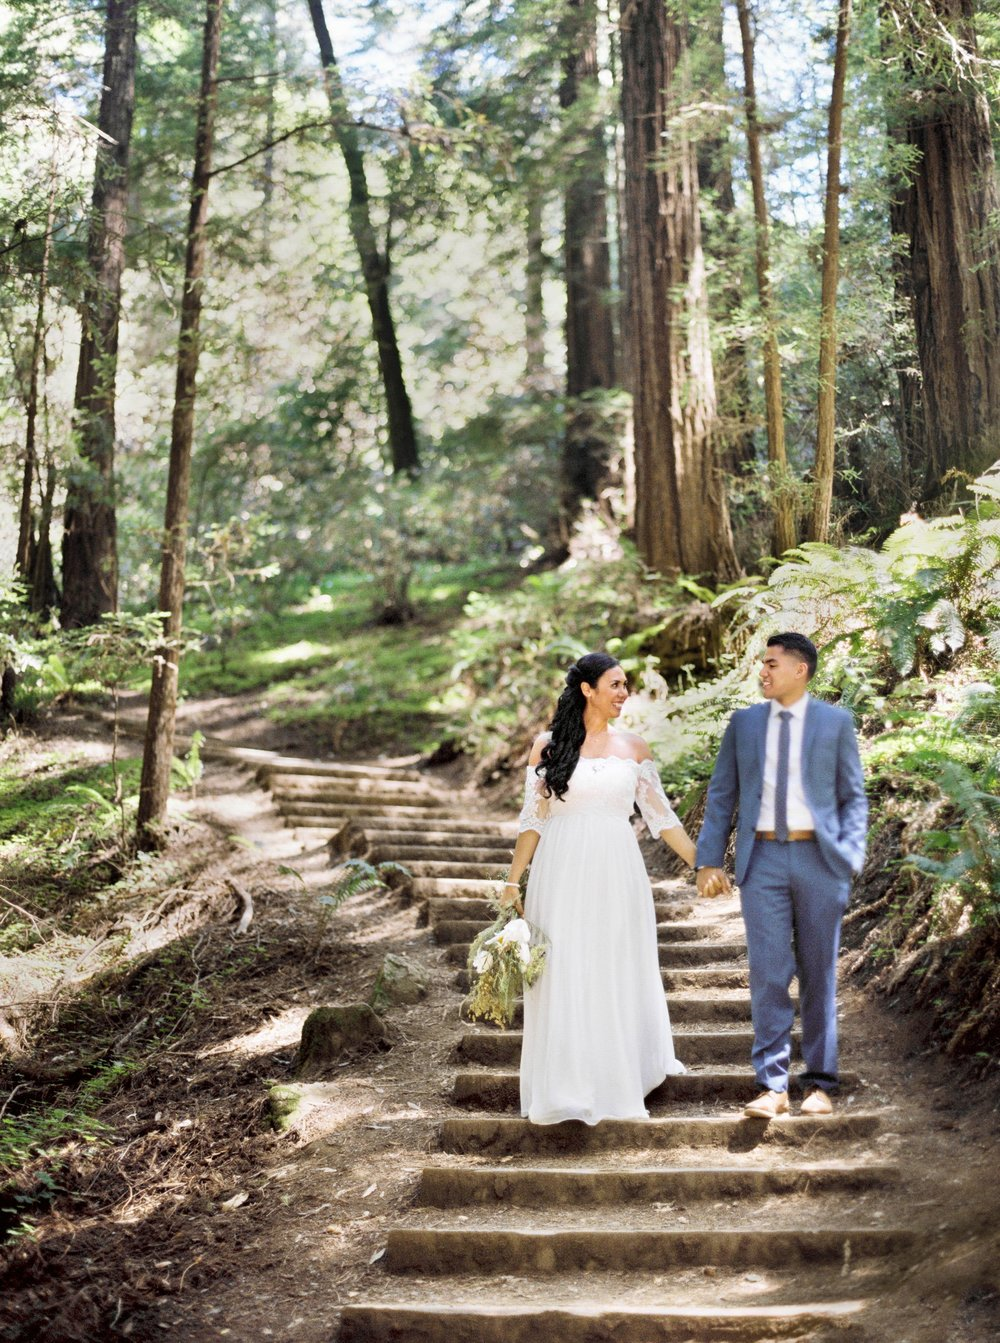 014_Krysten-Crebin-Muir-Woods-Elopement-Wedding-Photographer.jpg